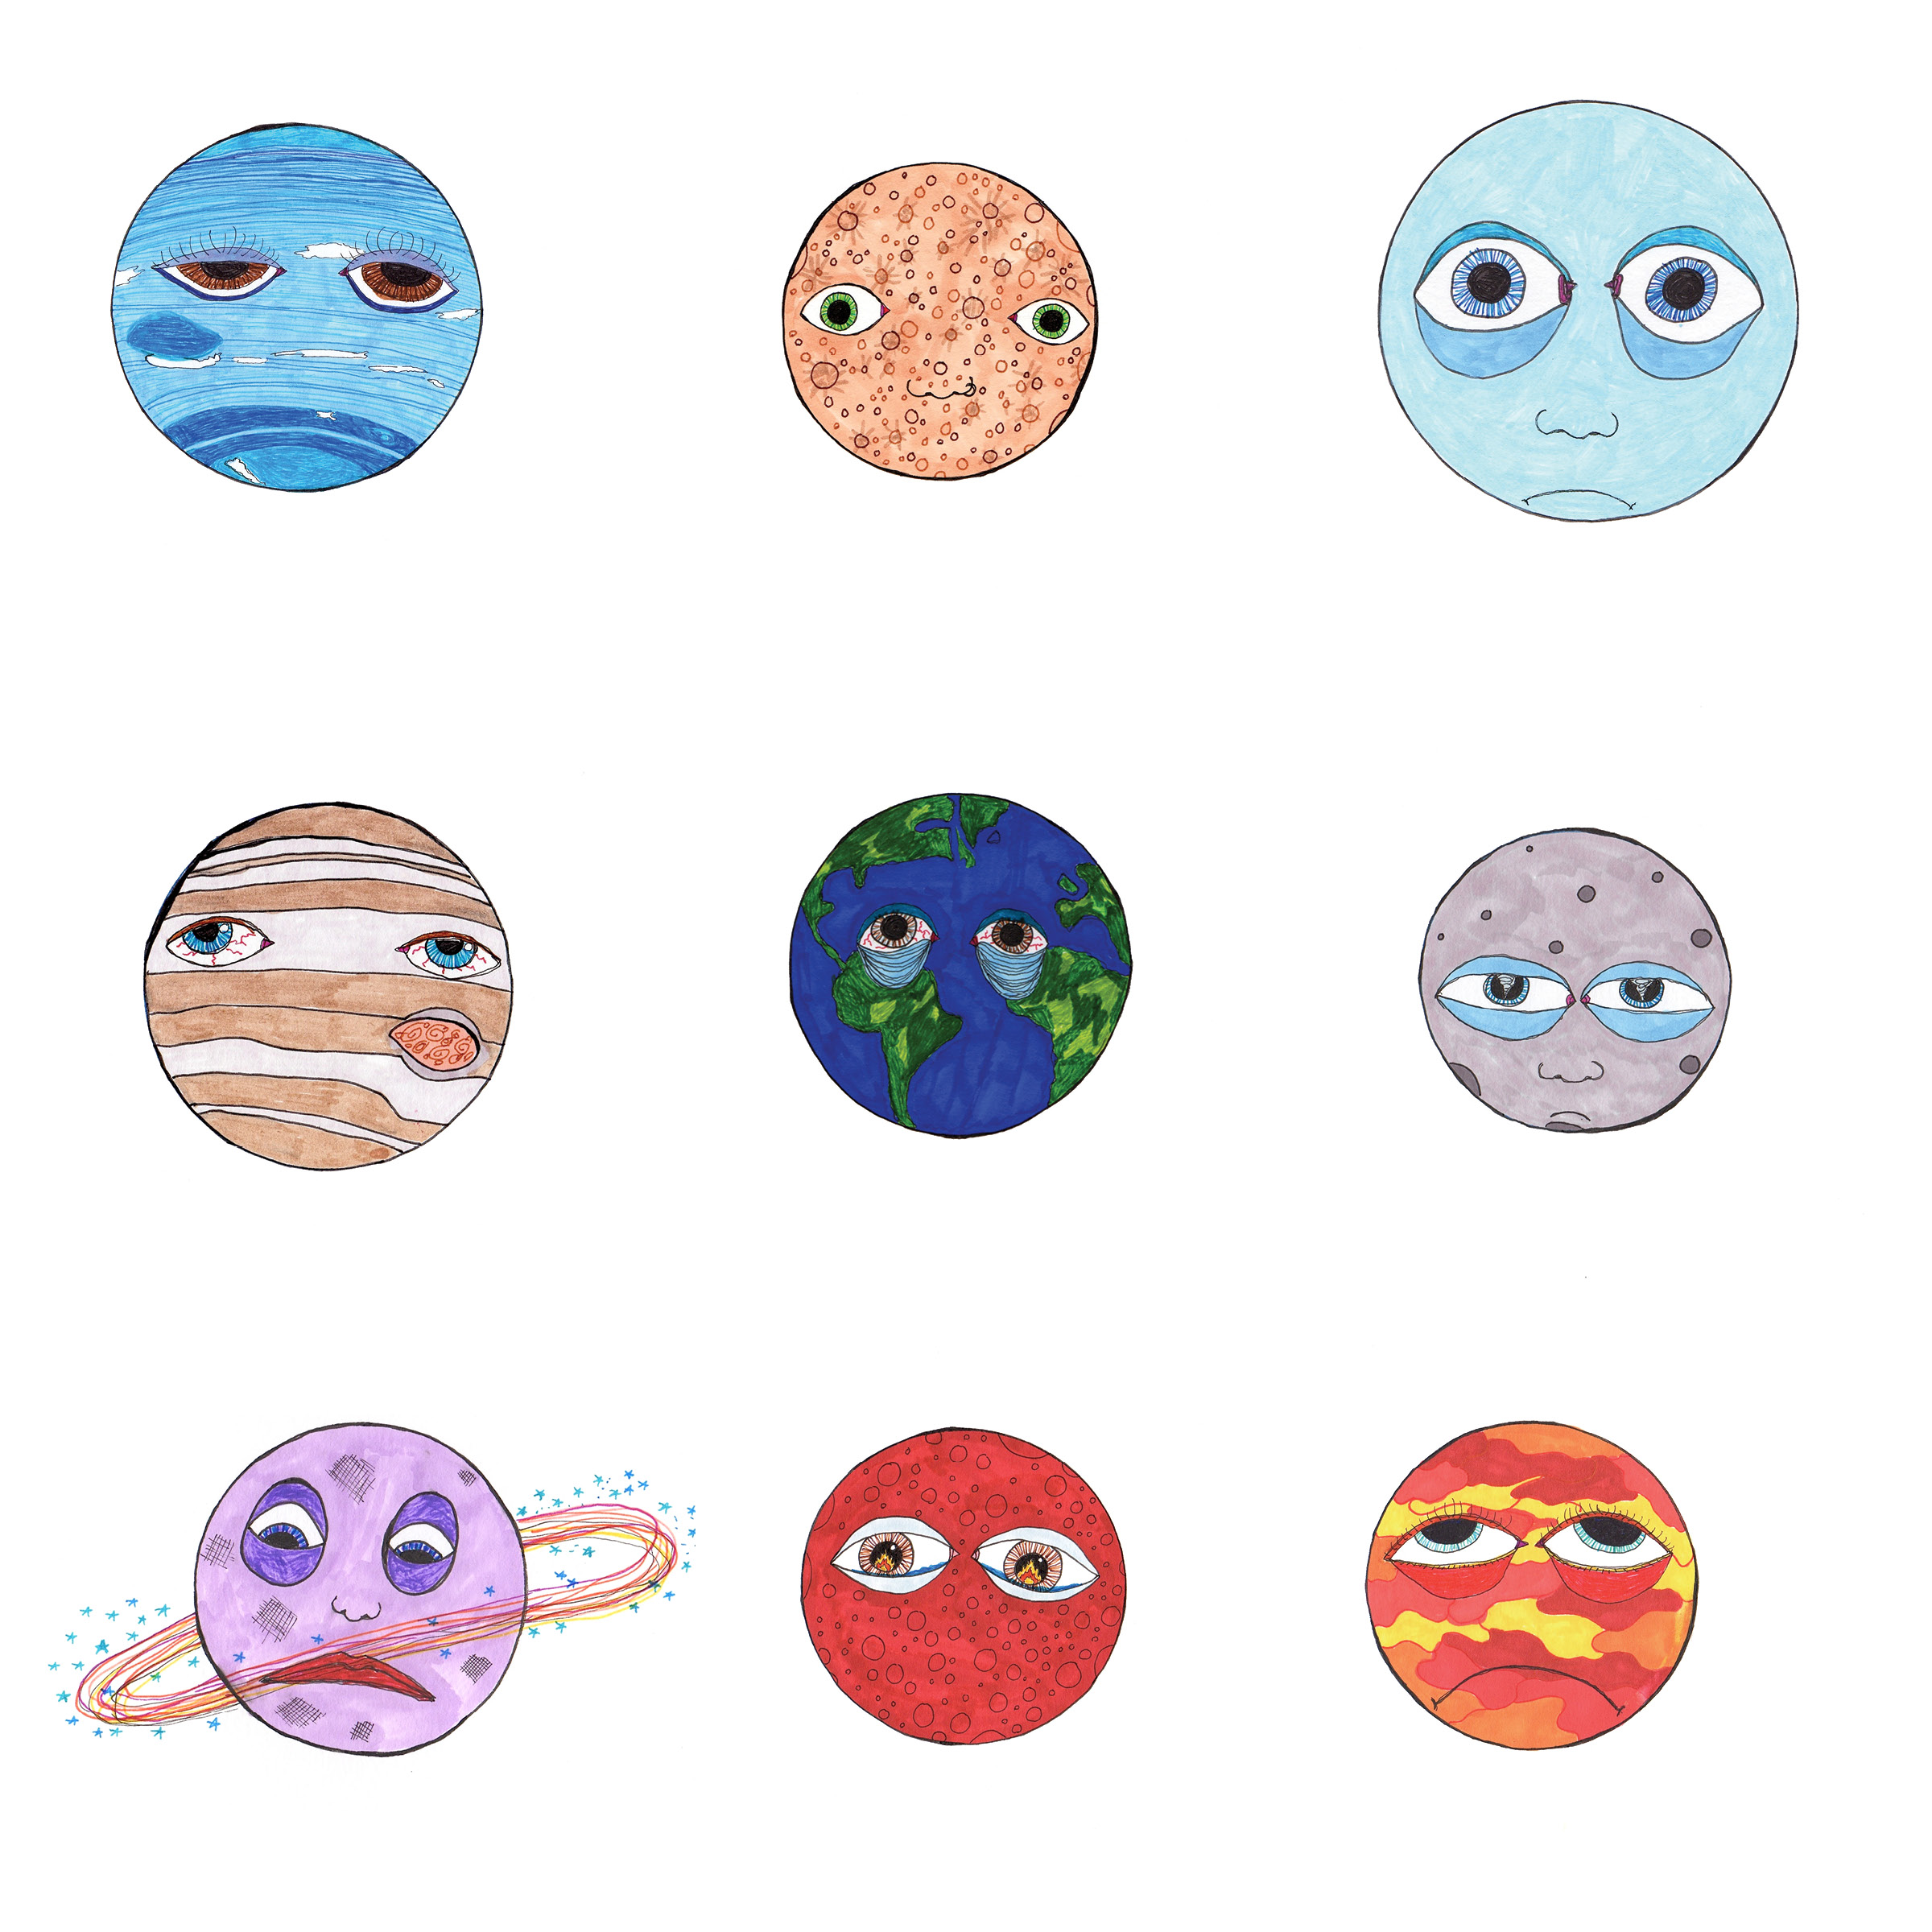 """""""A Series of Sad Planets""""  8x8 Limited edition giclee print on hot press water color paper  $35 per planet (Specify which planet in check out notes. U.S. shipping included)  ROW 1 left to right -Neptune, Mercury, Uranus. ROW 2 - Jupiter, Earth, Pluto. ROW 3 -Saturn, Mars, Venus.  Contact Leahwellbaum@gmail.com for deals on multiples or entire set."""